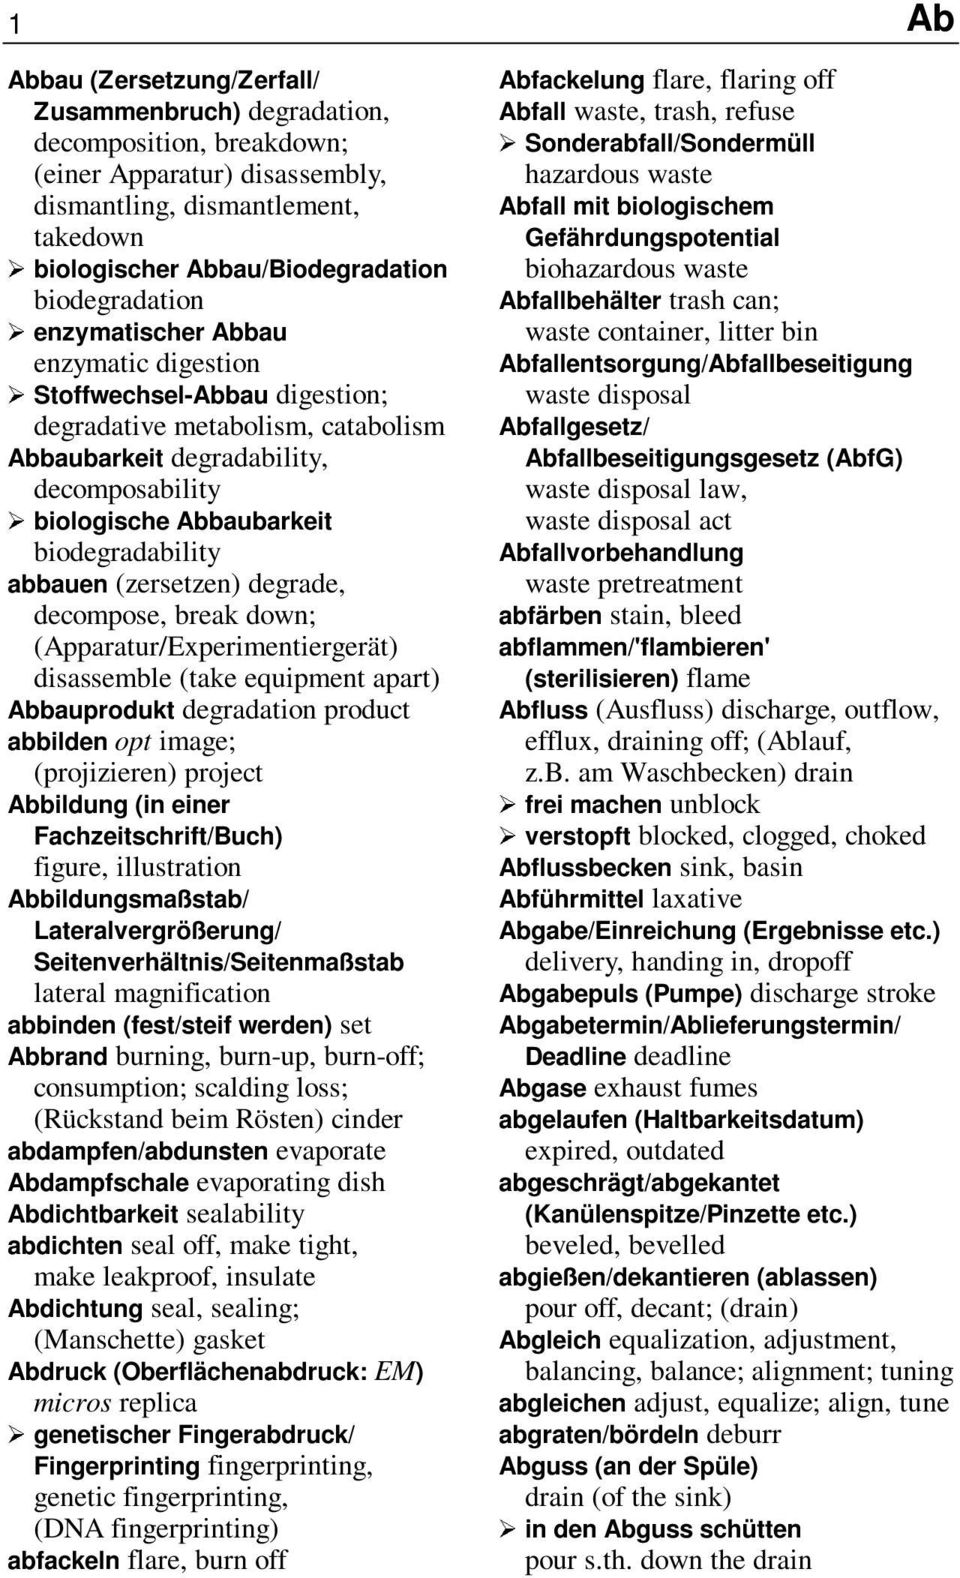 (zersetzen) degrade, decompose, break down; (Apparatur/Experimentiergerät) disassemble (take equipment apart) Abbauprodukt degradation product abbilden opt image; (projizieren) project Abbildung (in